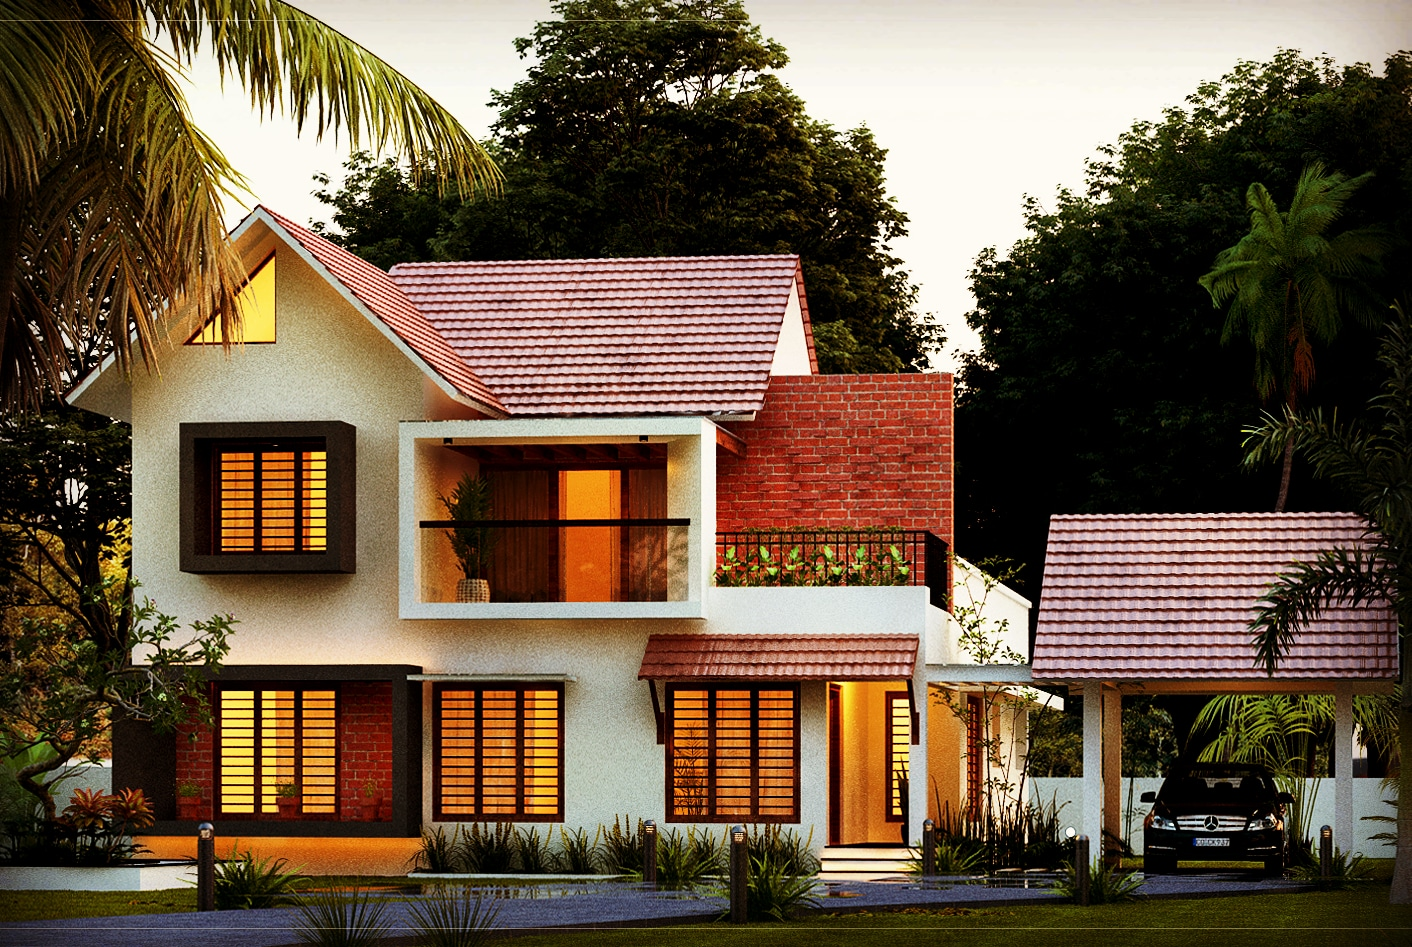 3 bedroom house plan 1950 sq ft 3 bed room residence